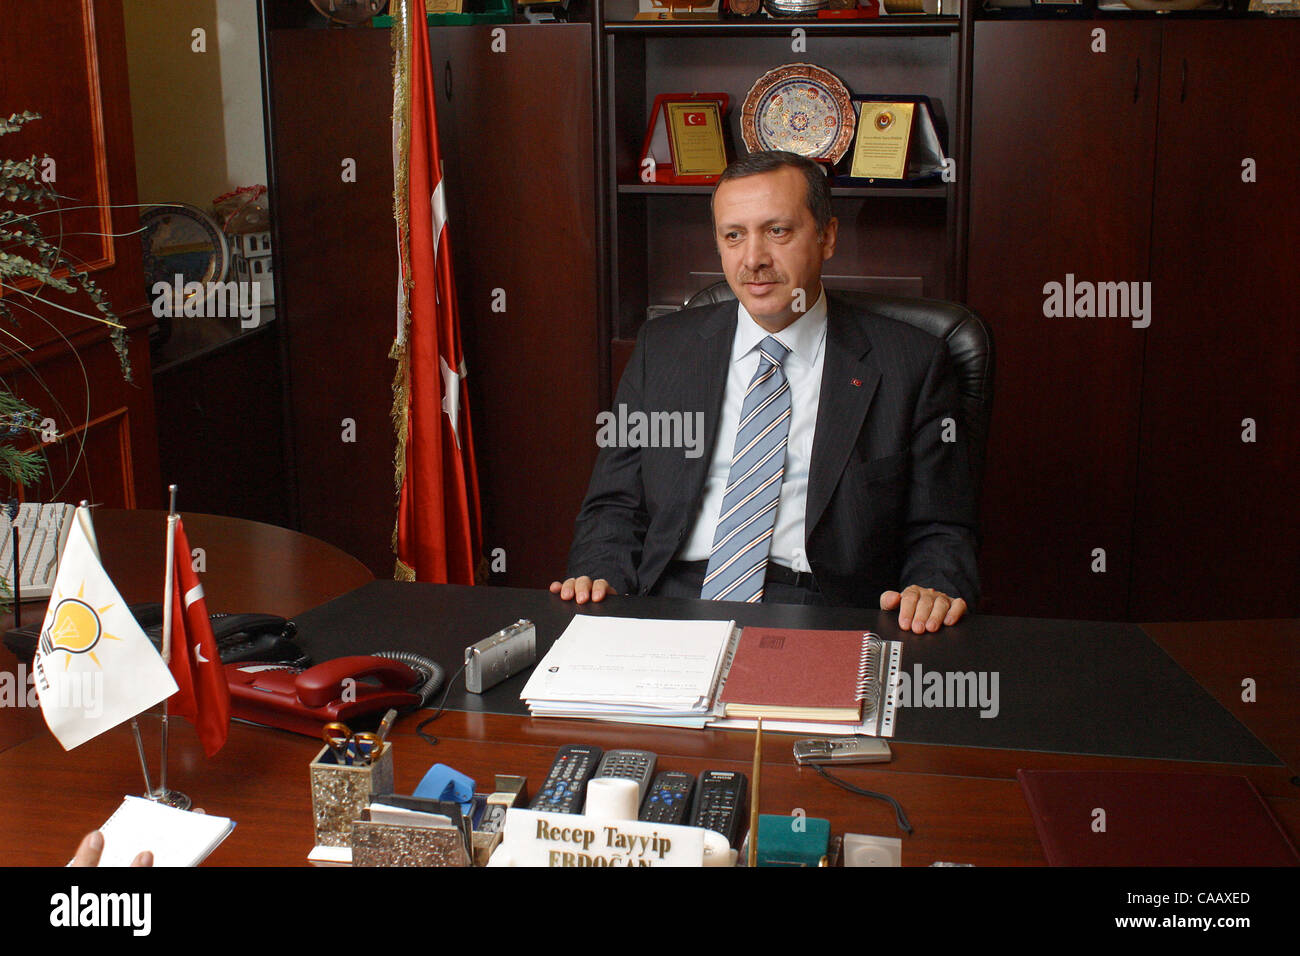 turkey home office. Nov 25, 2003; Istanbul, TURKEY; Recep Tayyip Erdogan, Prime Minister Of Turkey Home Office